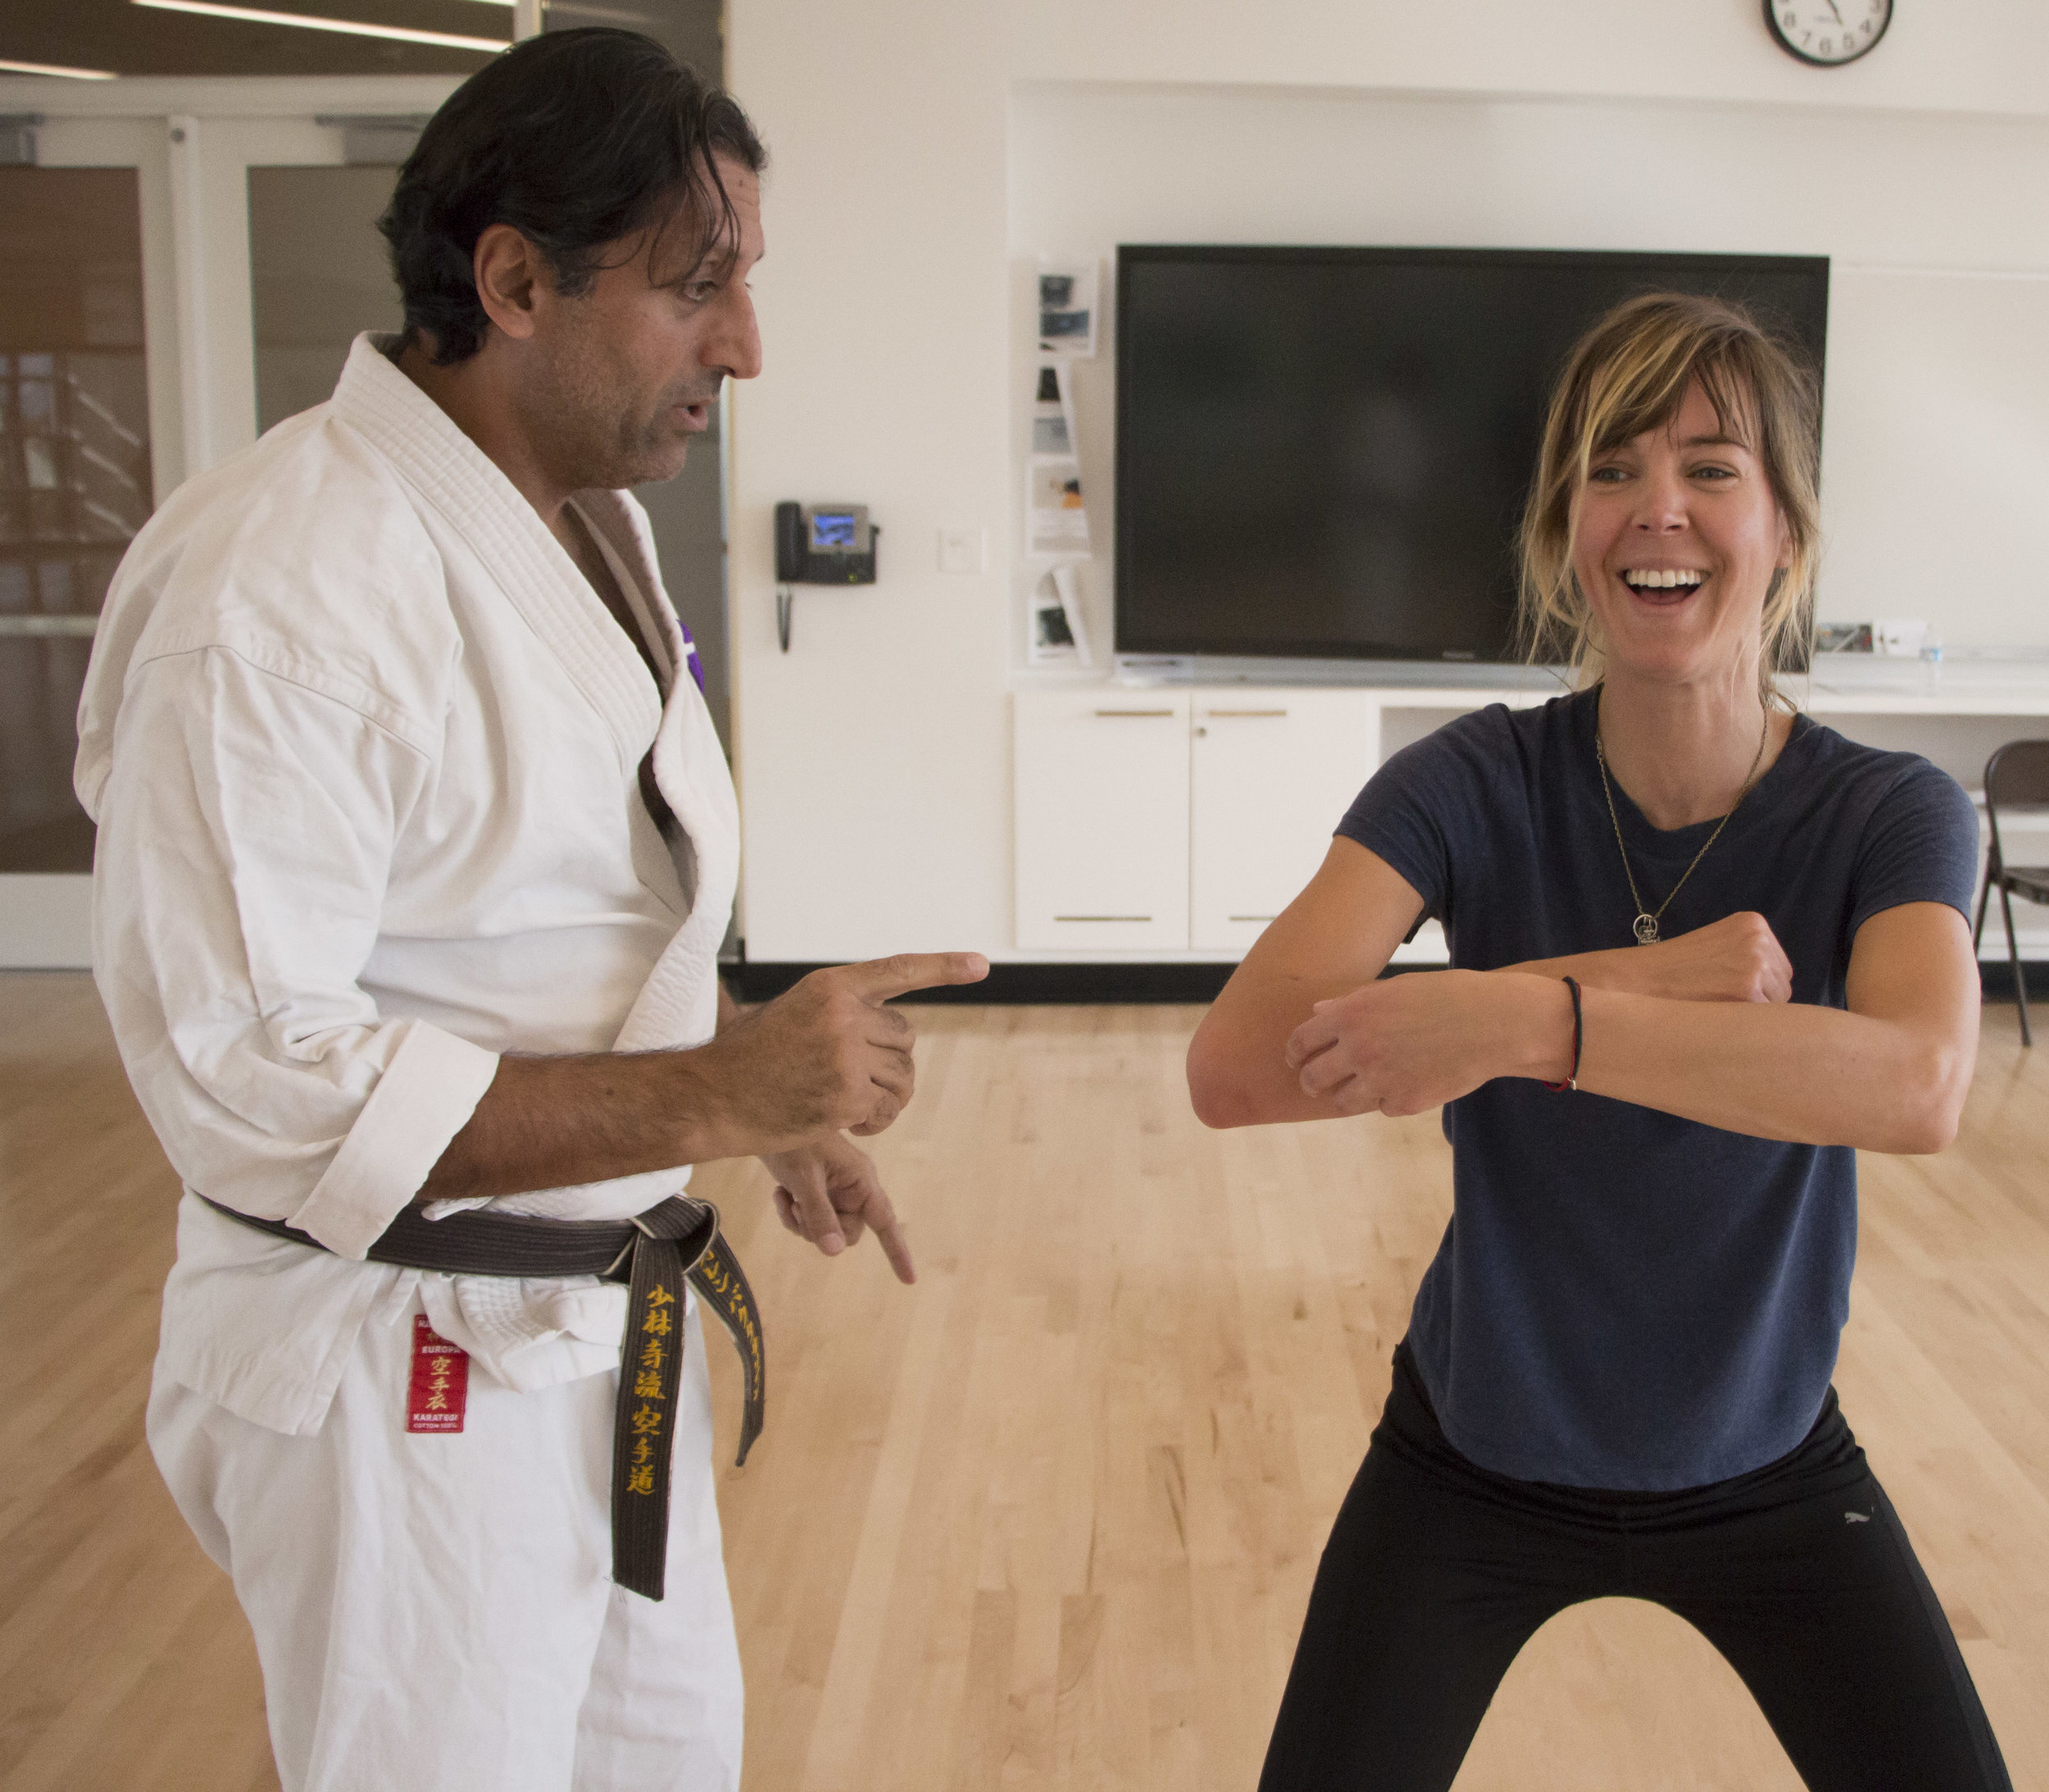 Ida Barklund laughs as Professor Baghdasarian gives her advice on her technique in the karate class at the CPC of Santa Monica College in Santa Monica, California on Thursday, April 18, 2018. (Wilson Gomez/Corsair Photo)